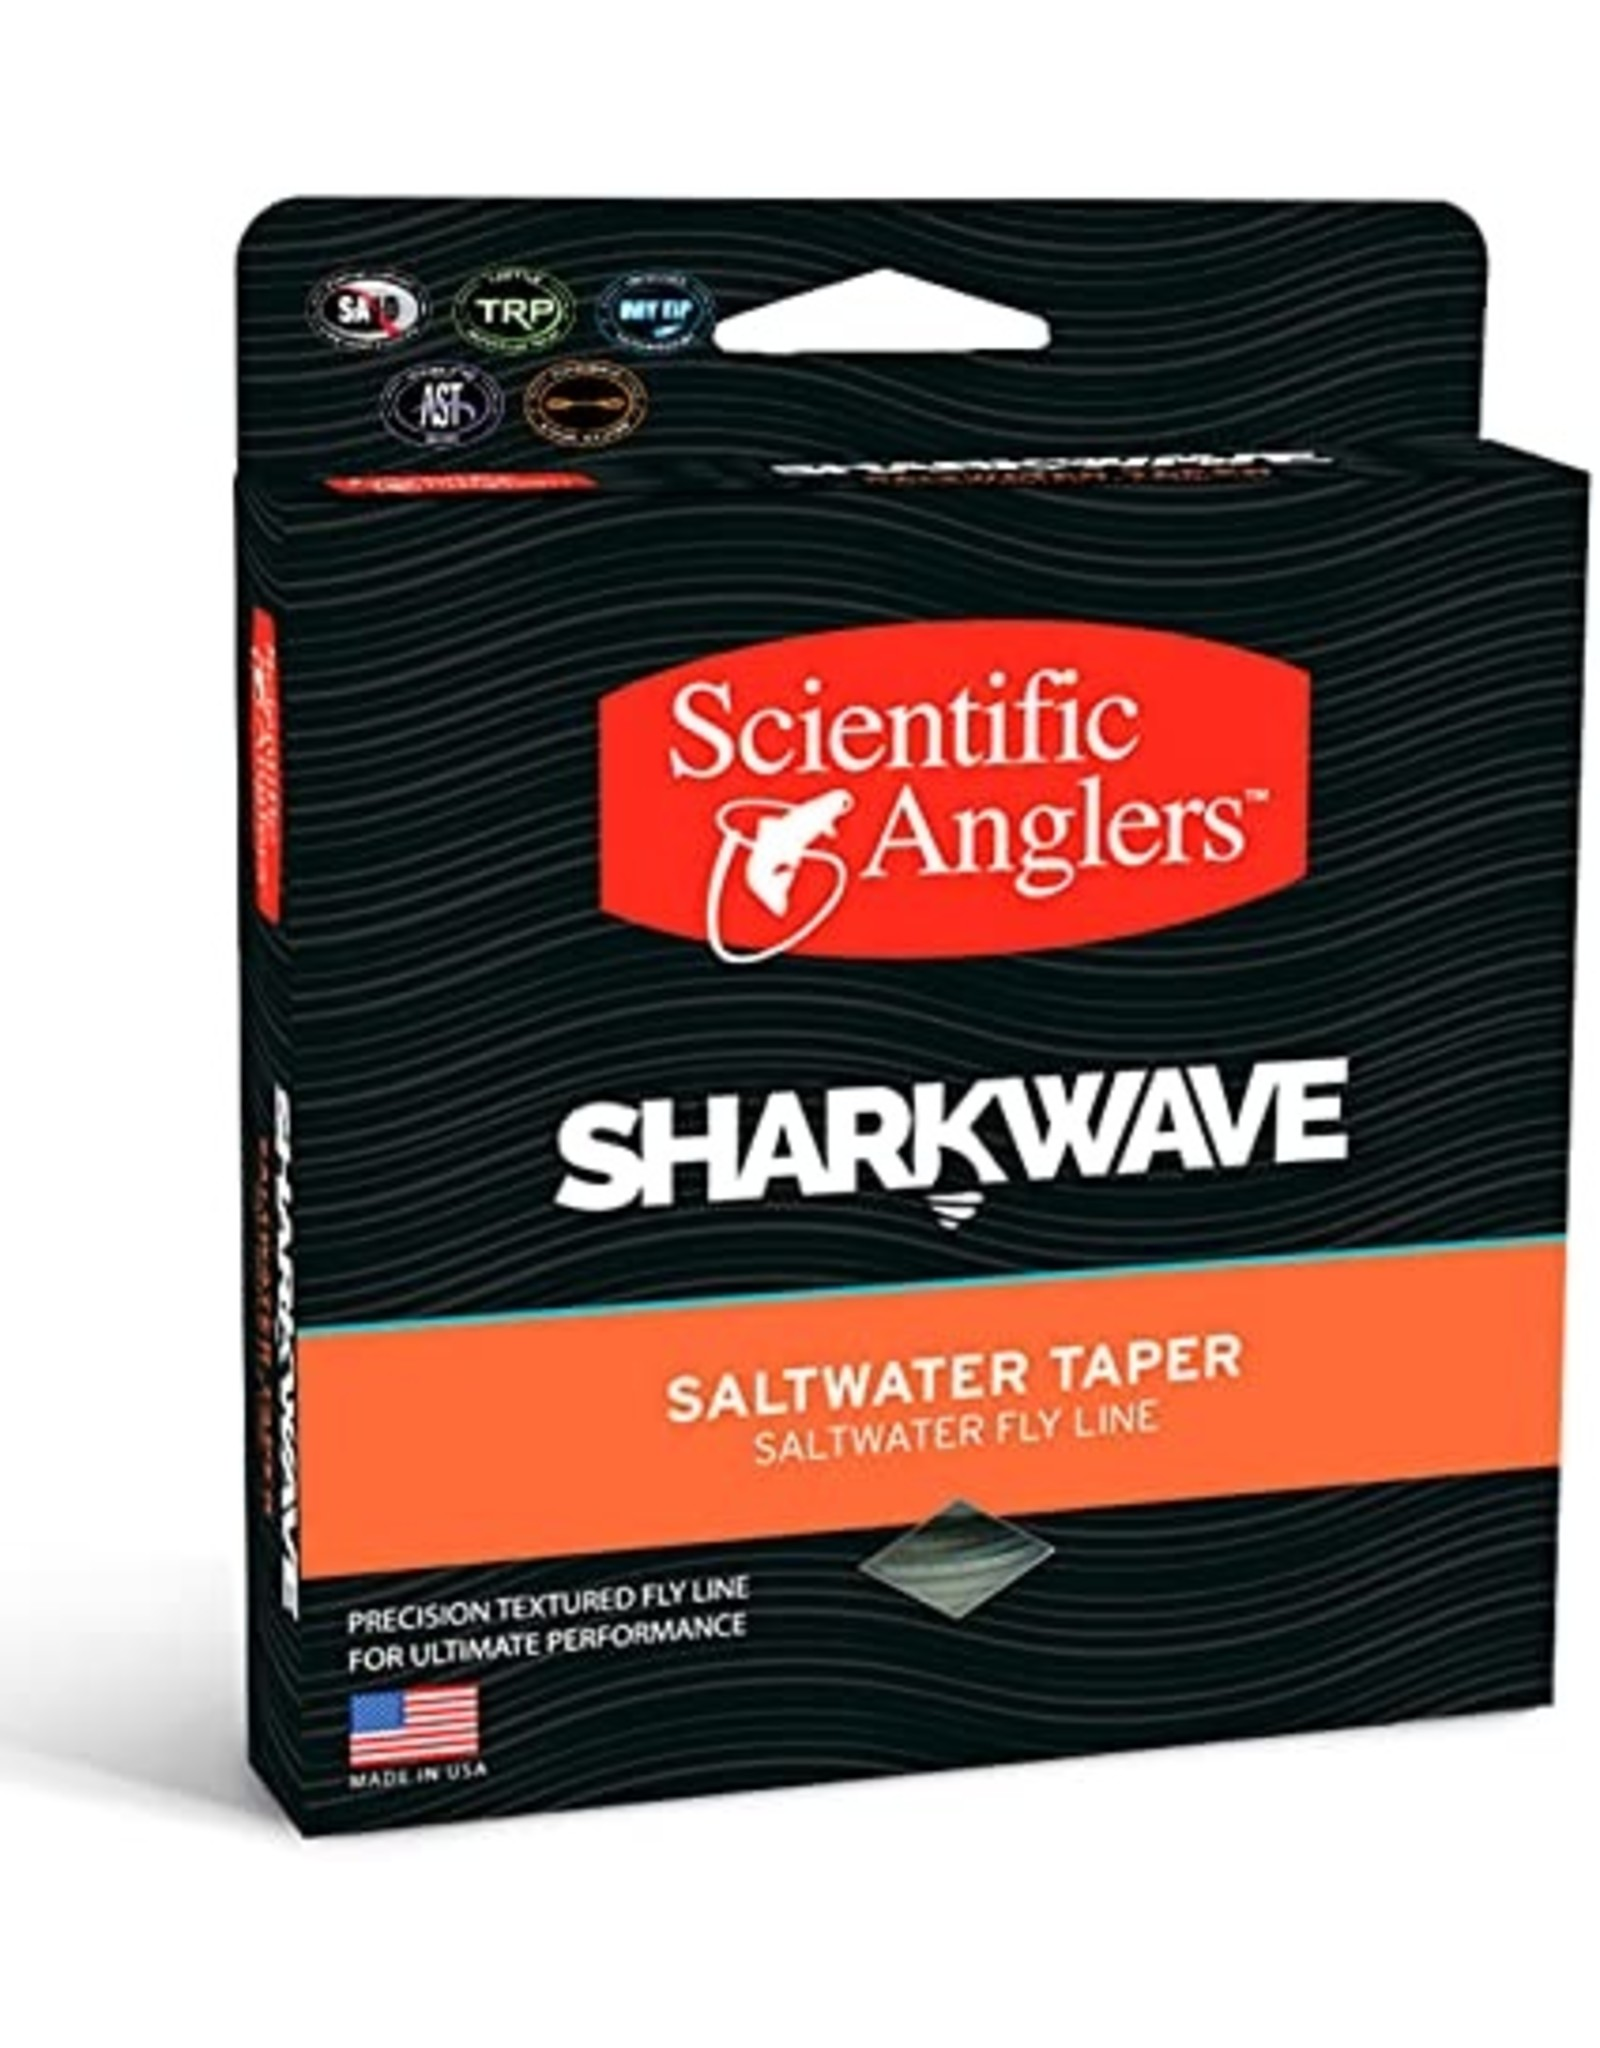 Scientific Anglers Scientific Anglers - Sharkwave Saltwater Taper Fly Line